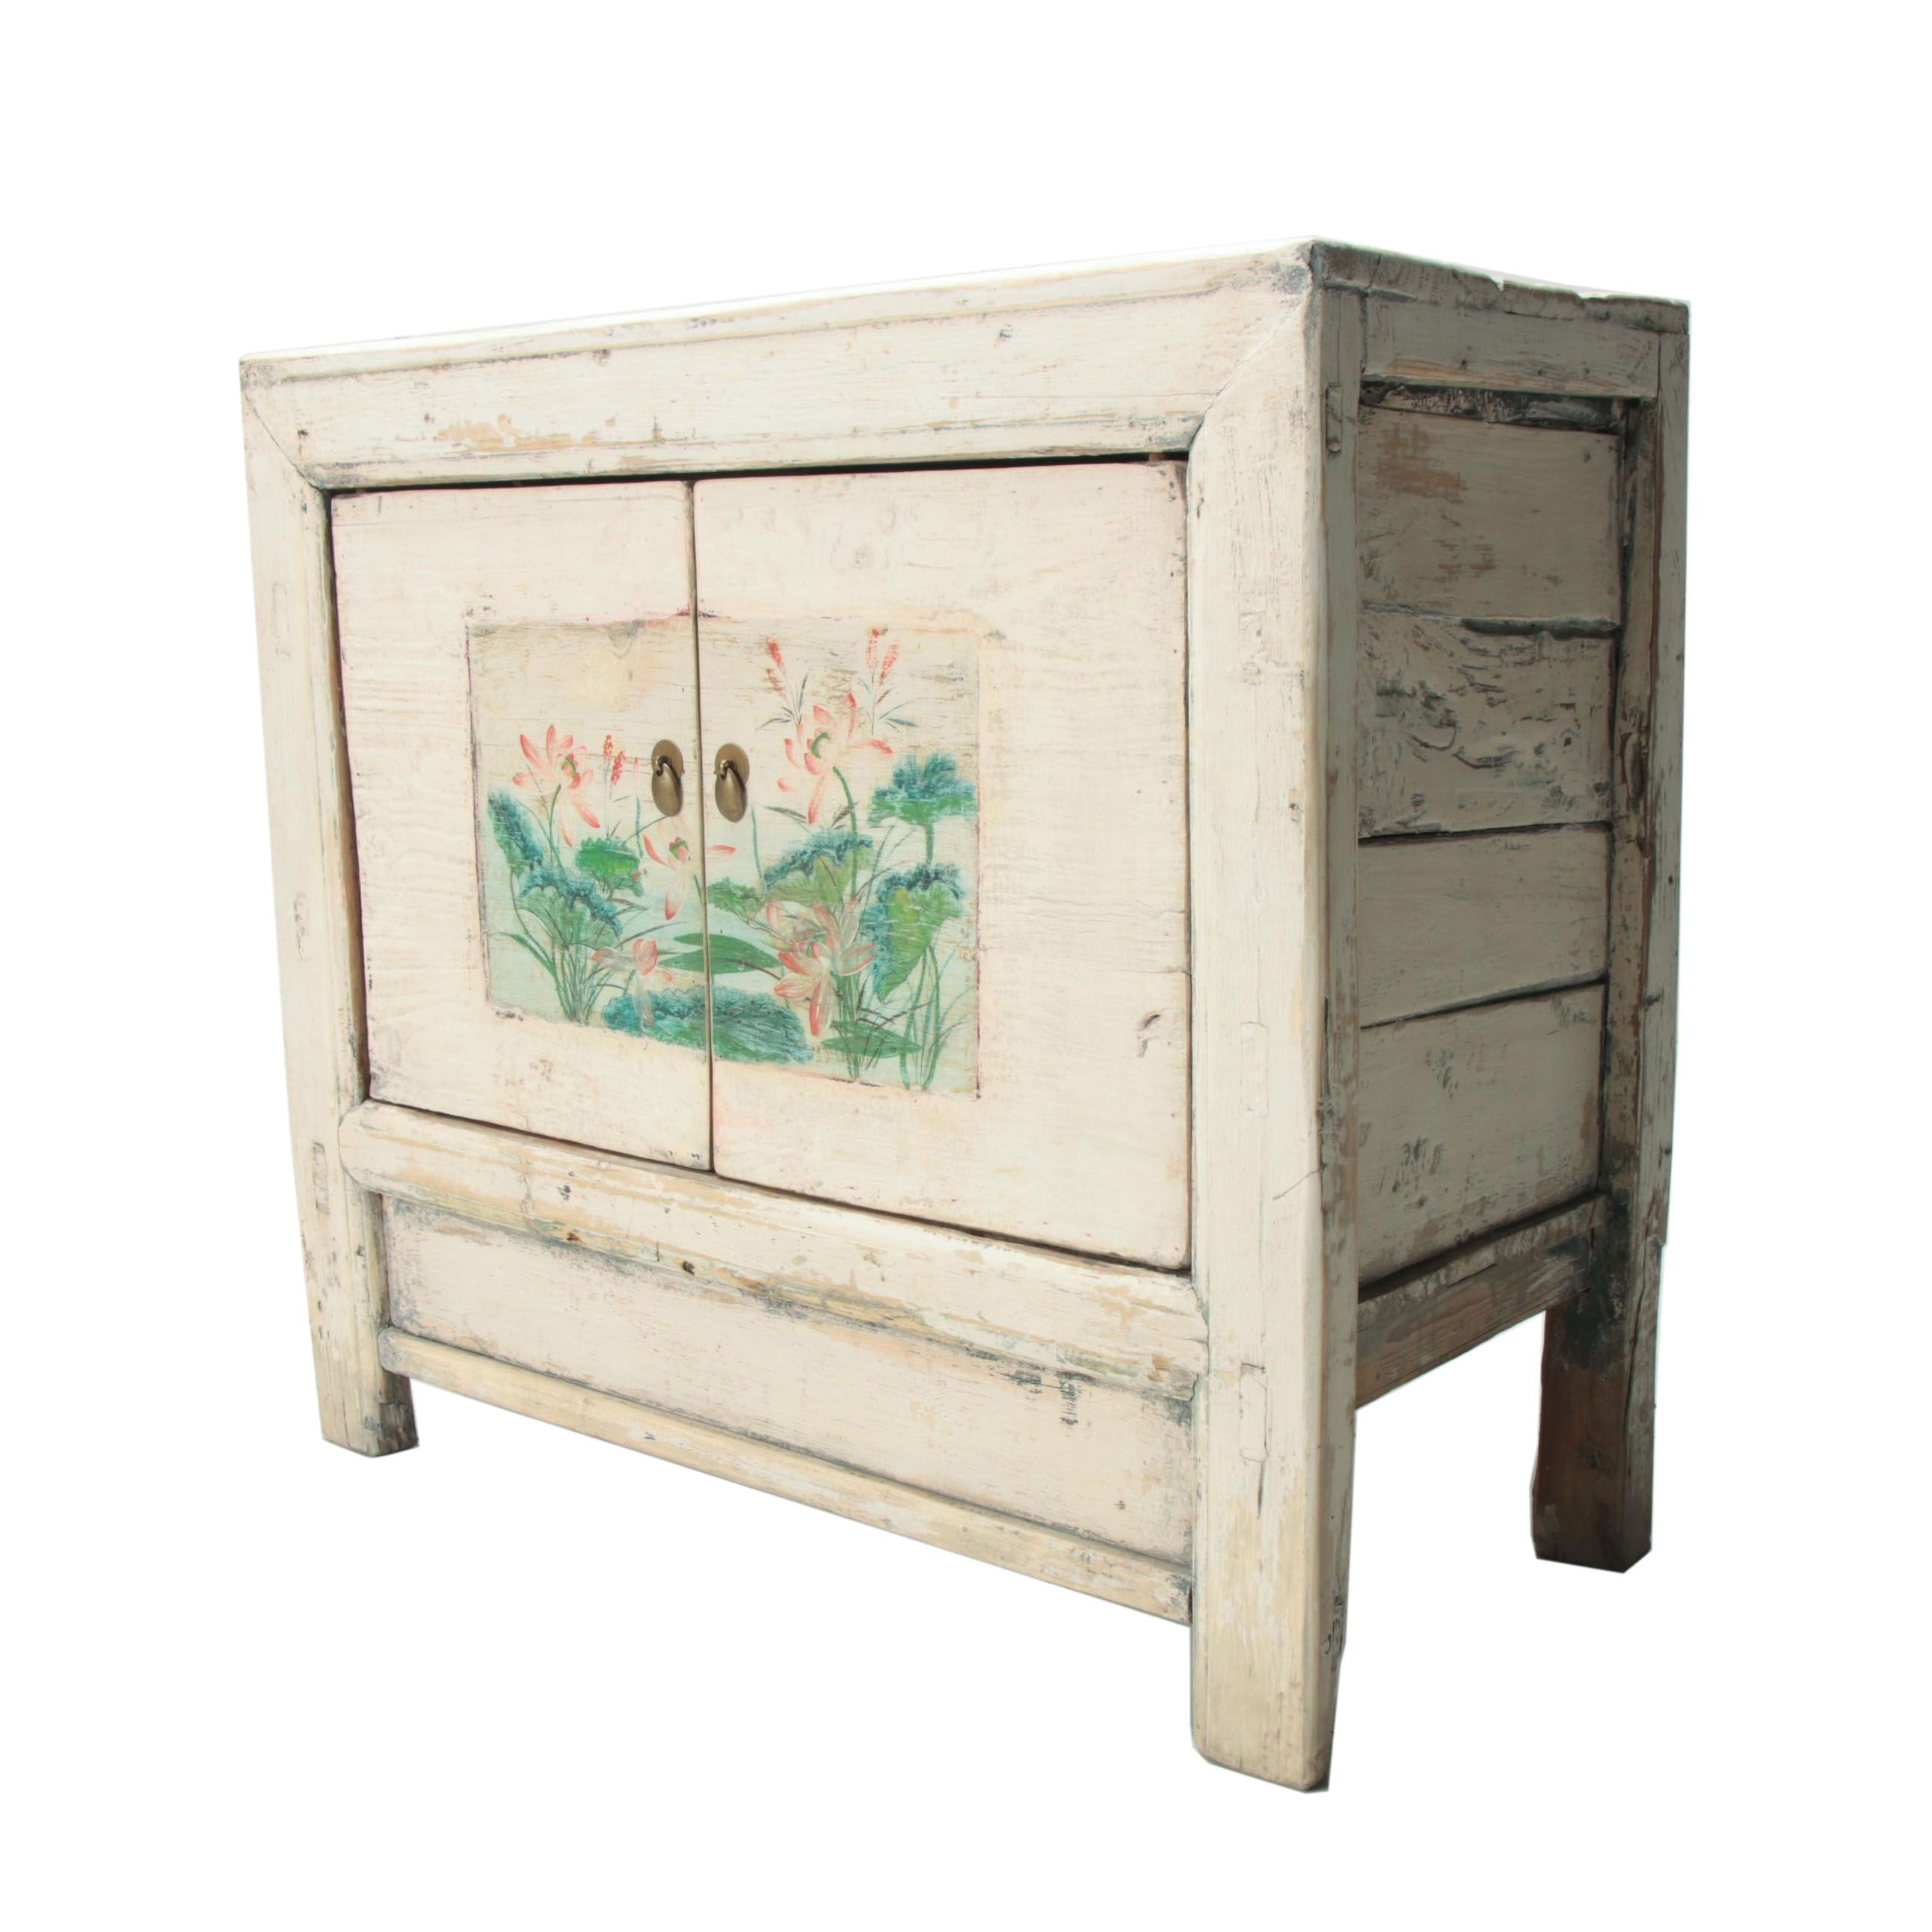 Mongolian Provincial Painted Pine Wood Cabinet, Late 20th Century